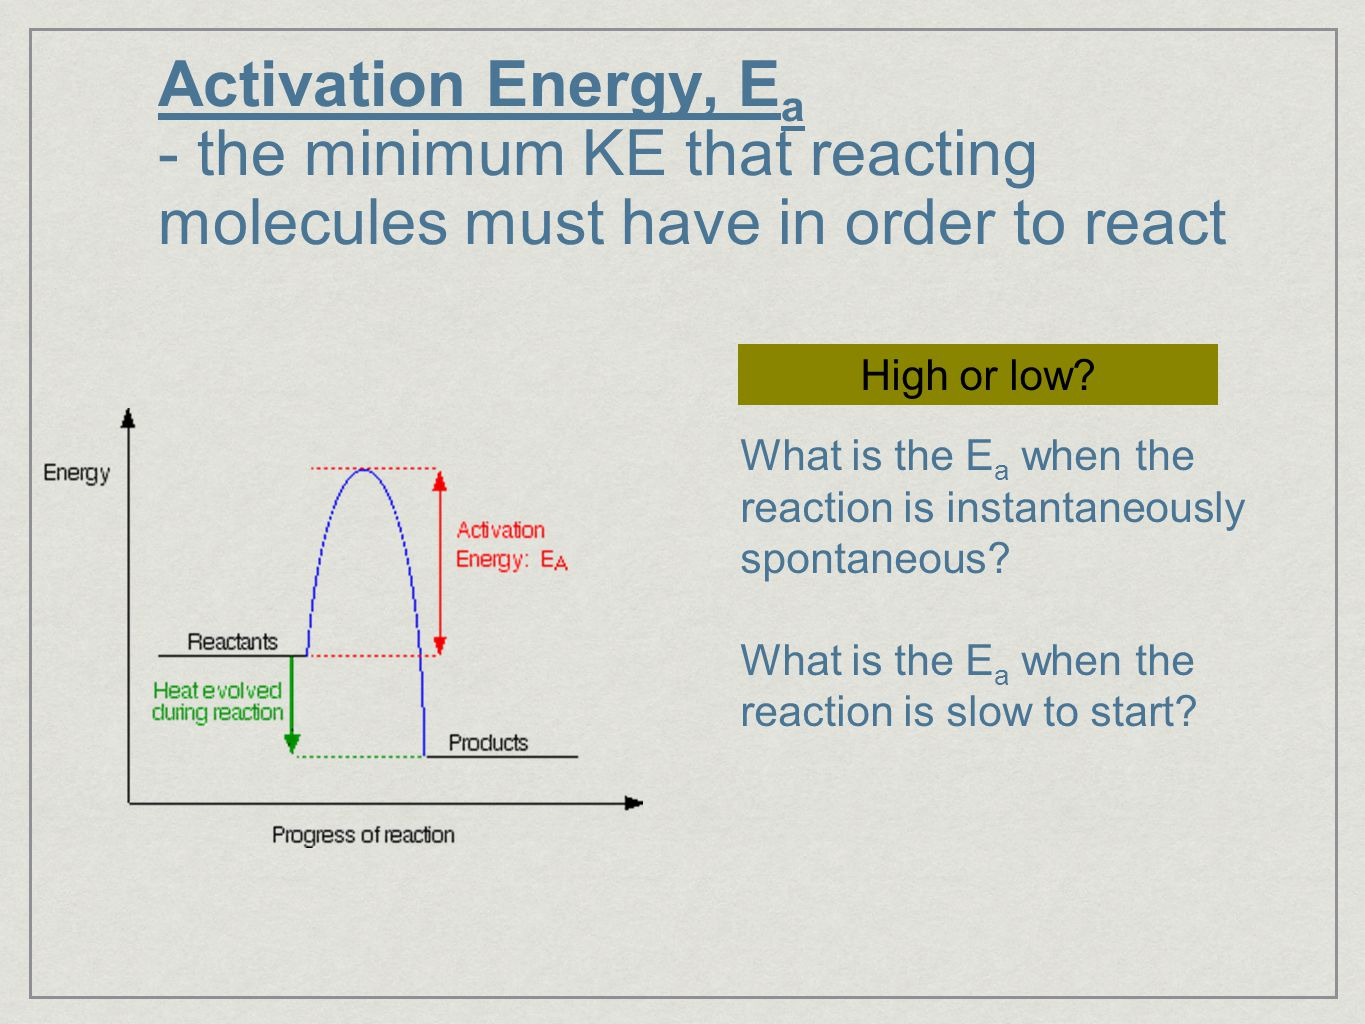 Activation Energy, Ea - the minimum KE that reacting molecules must have in order to react